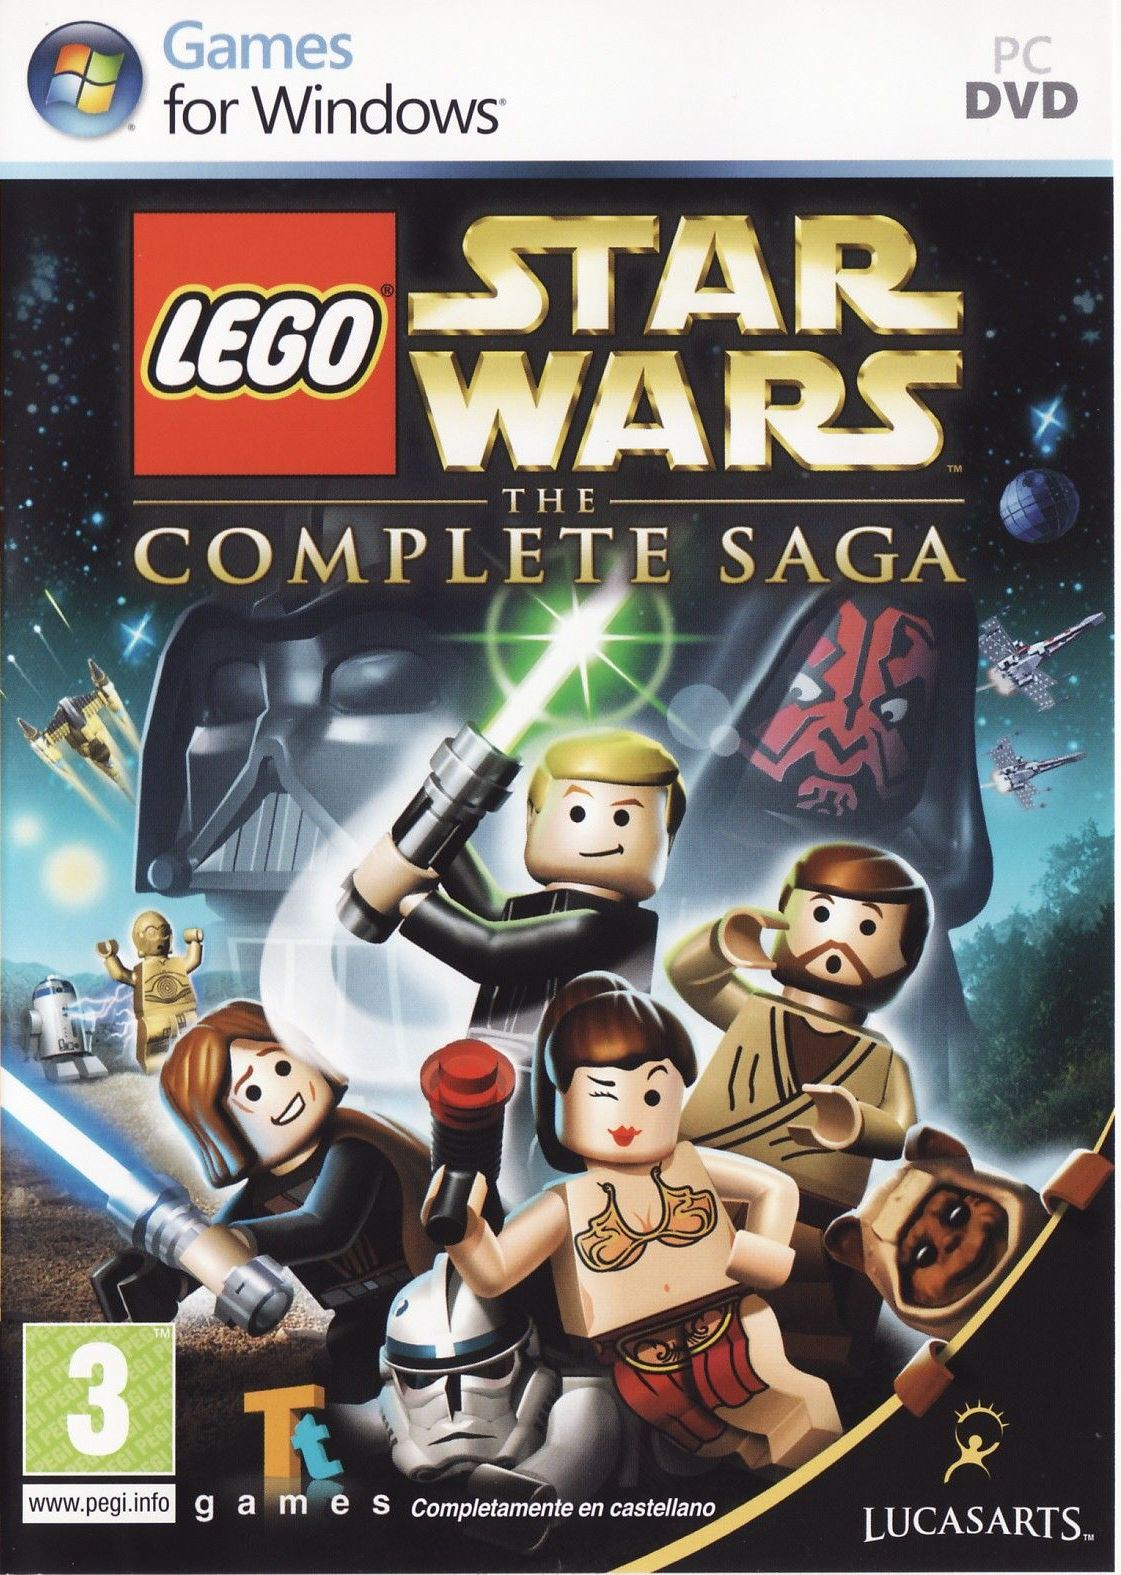 Lego. Star Wars: The Complete Saga (2009) PC